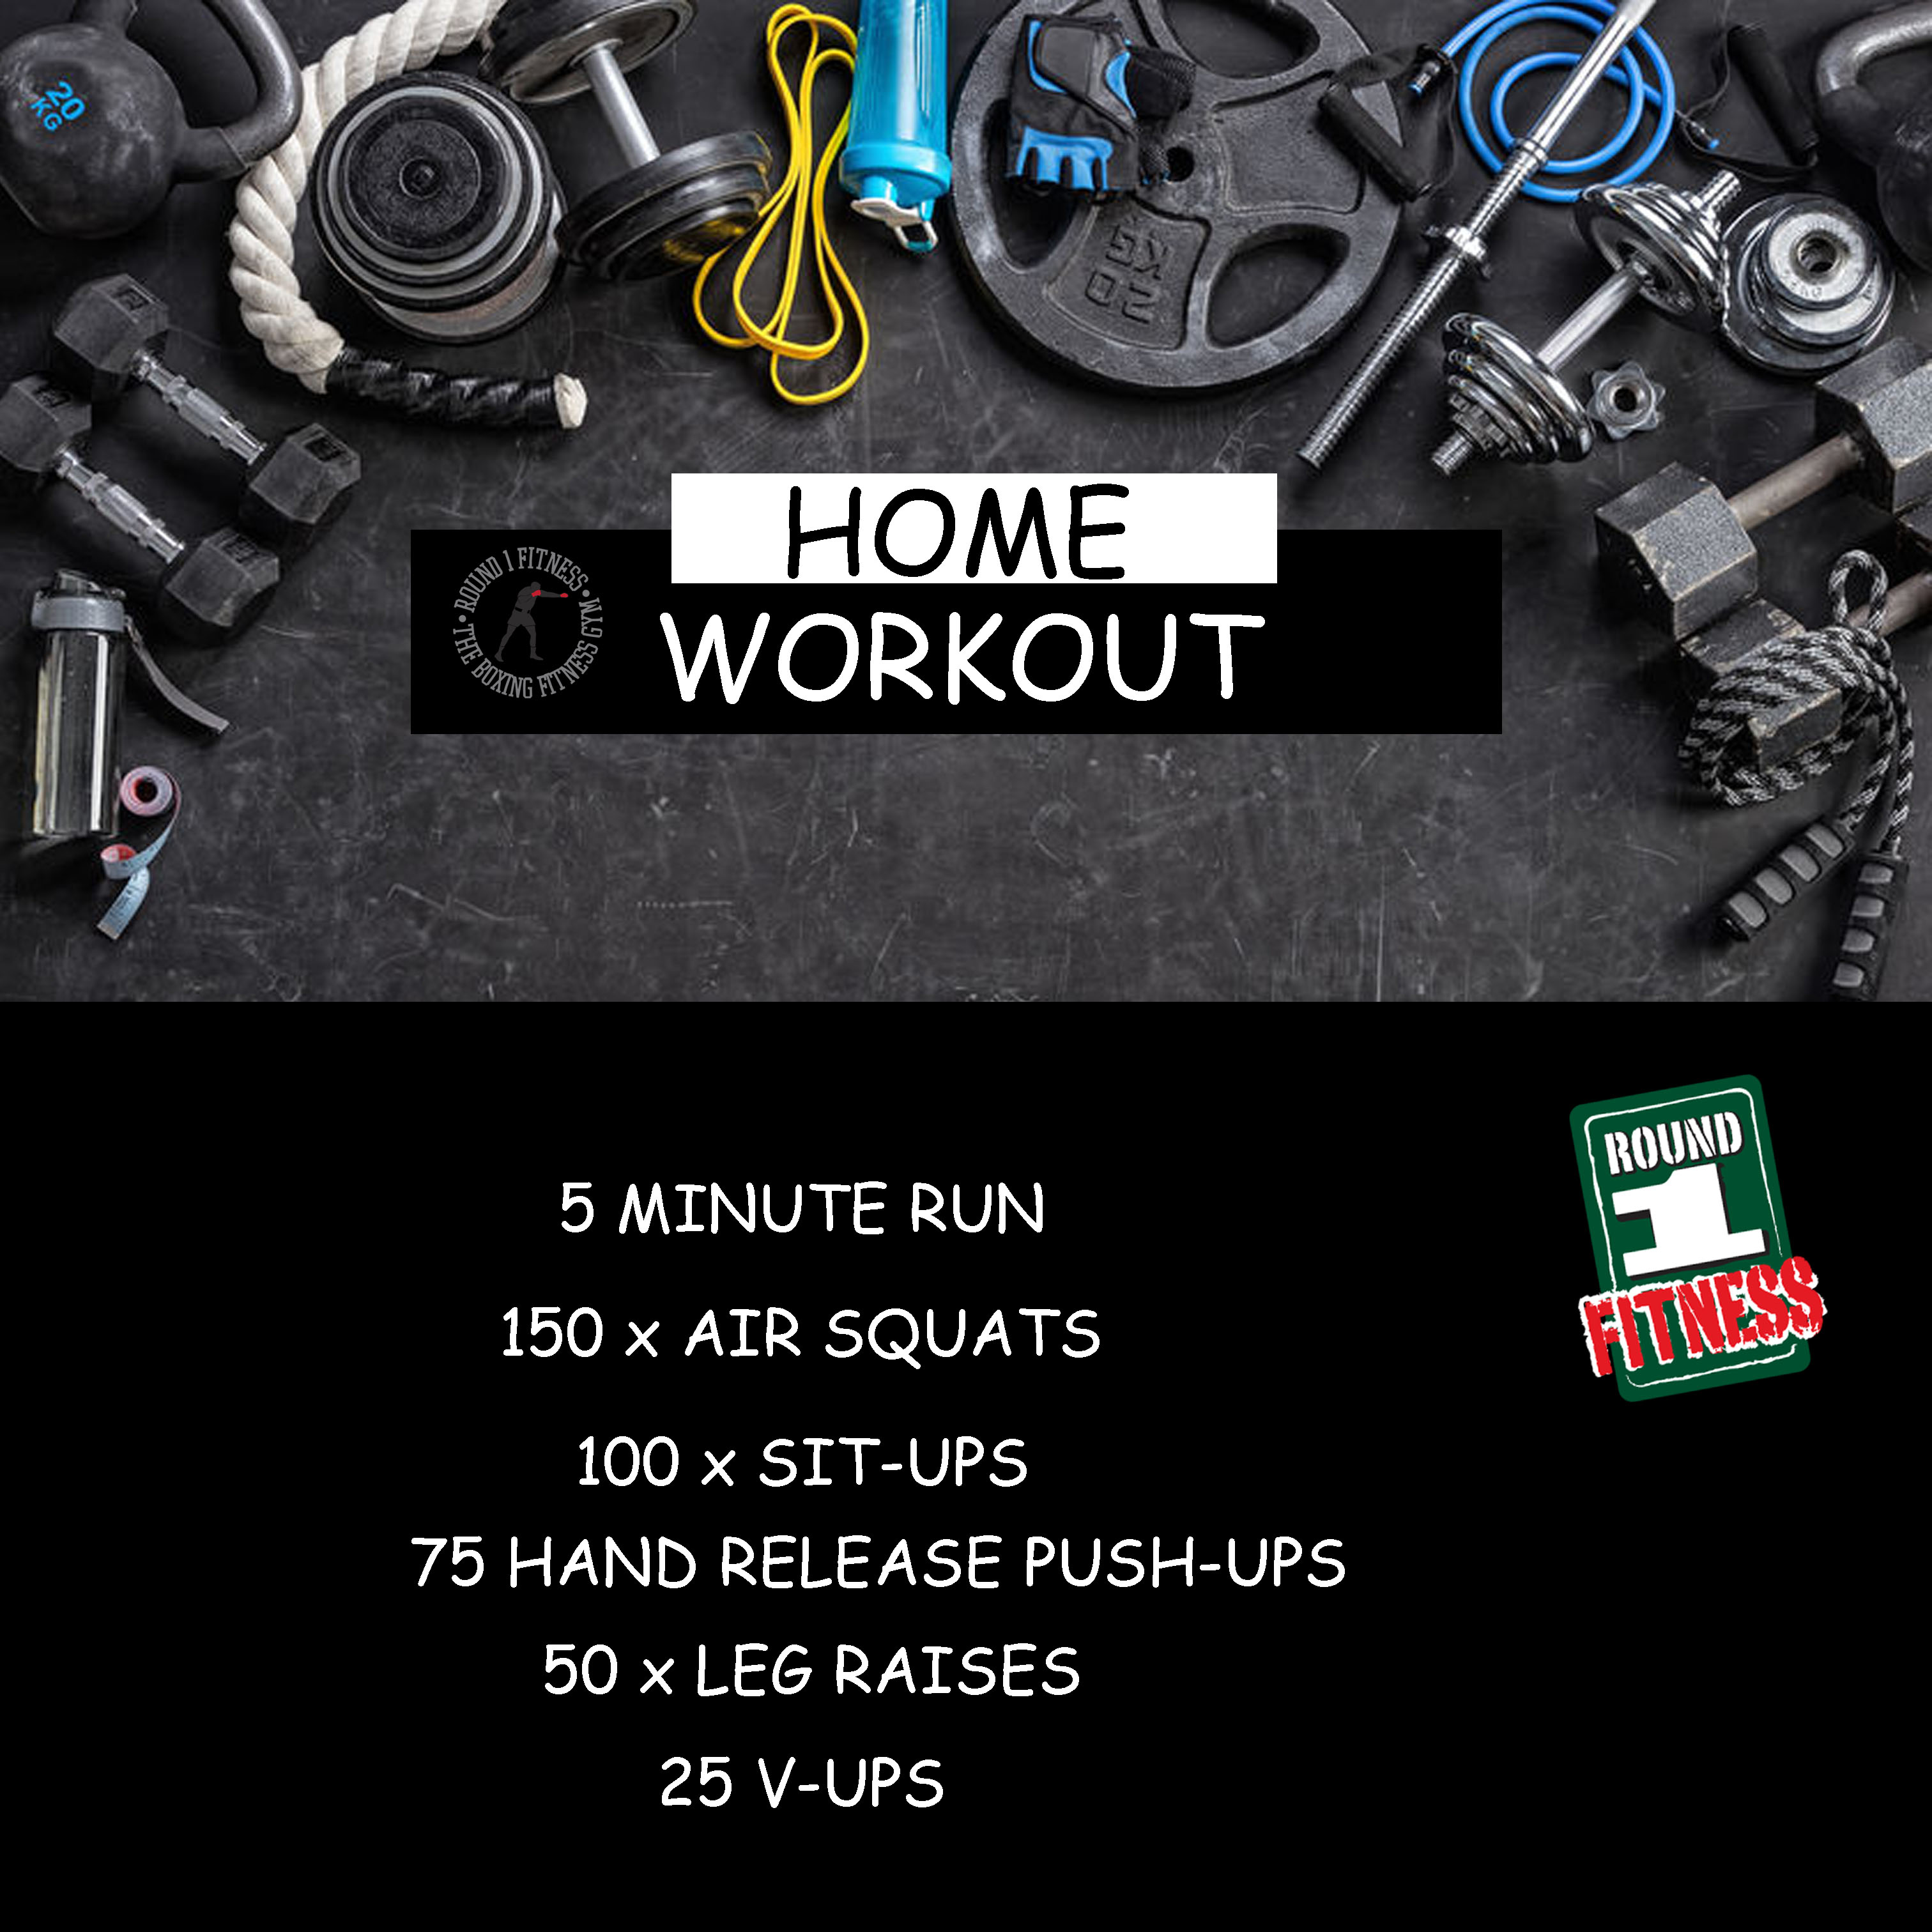 Home Workout:  Wednesday, April 29th